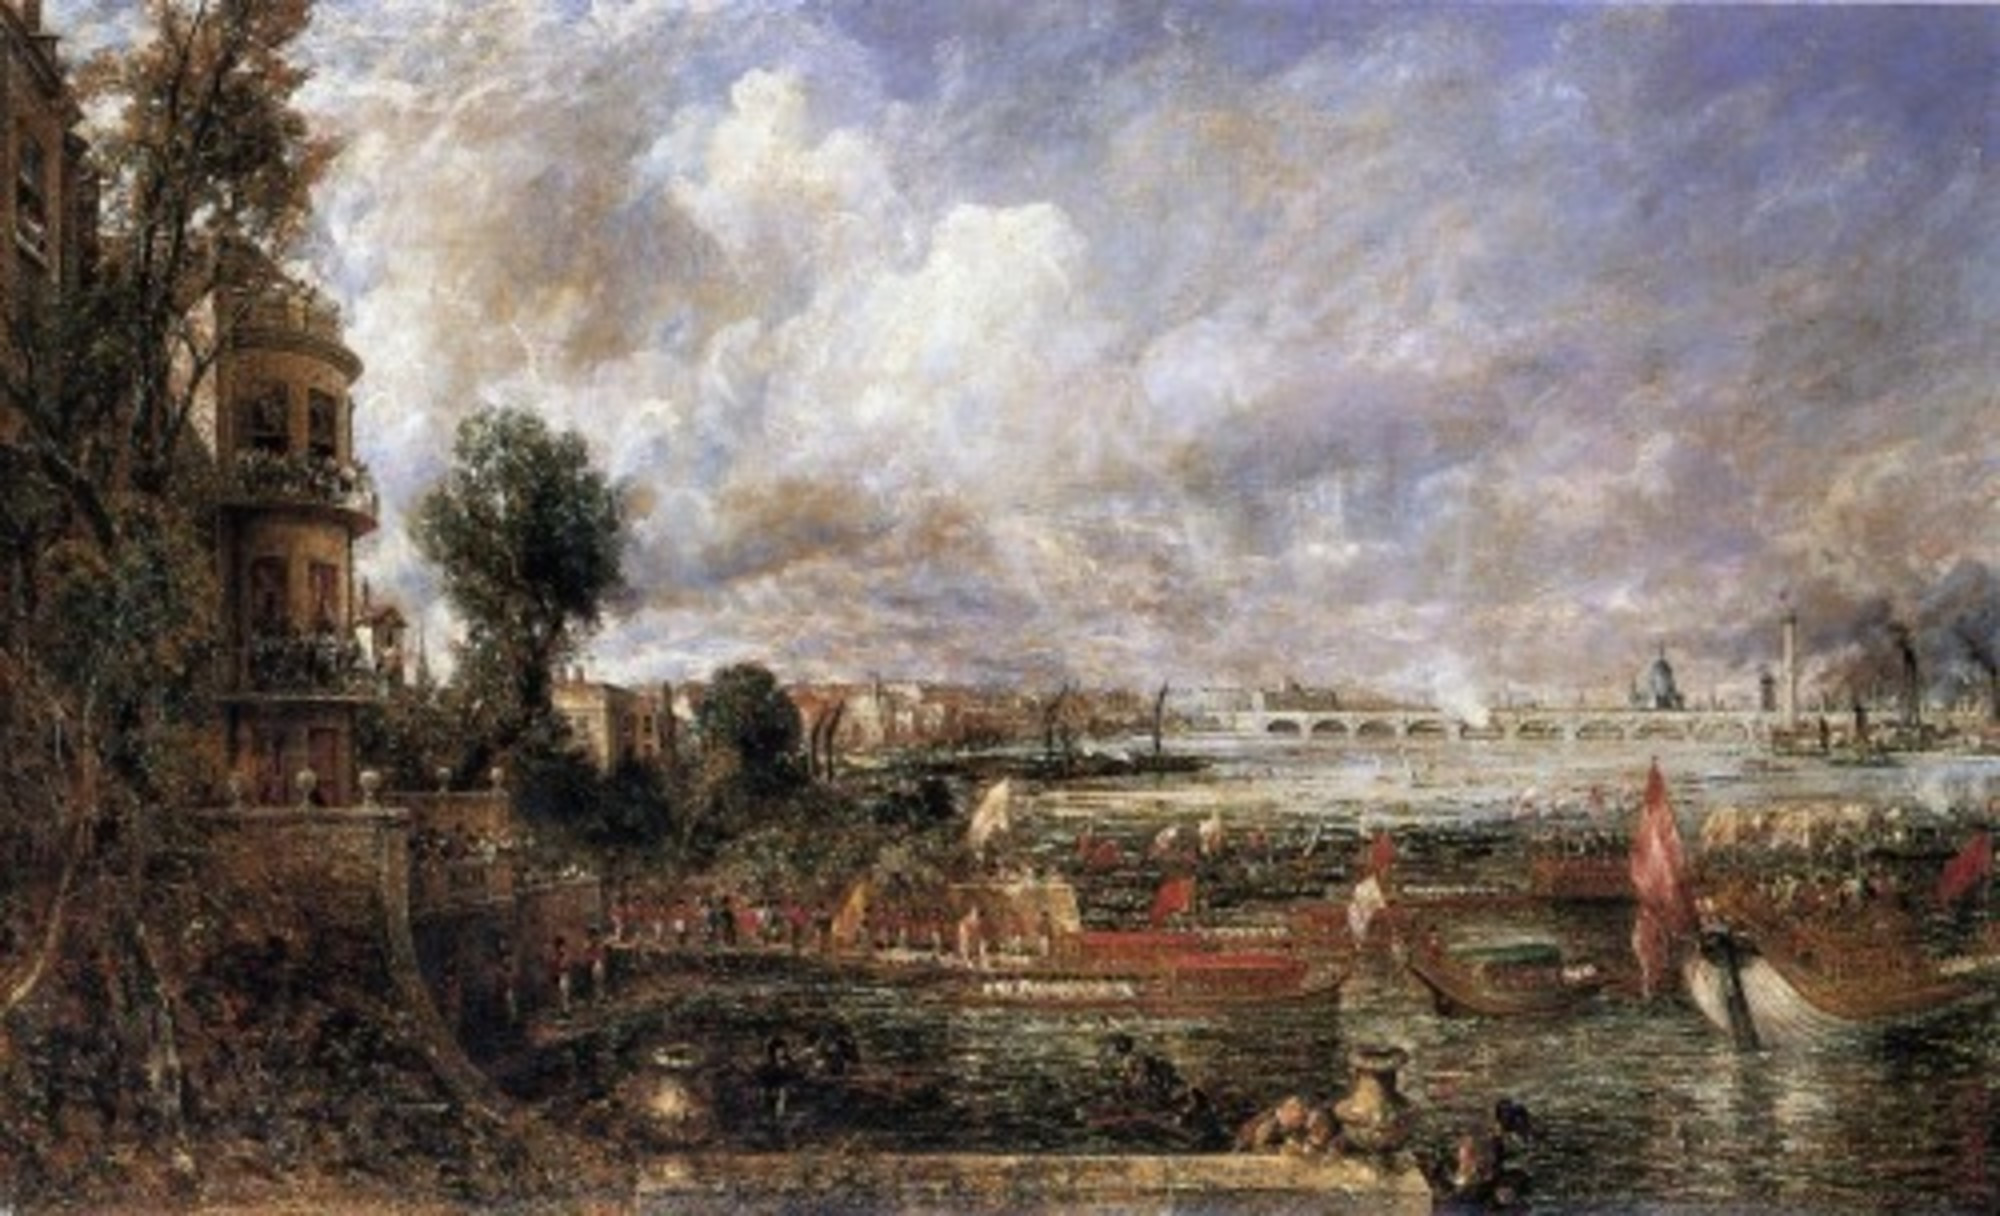 The_Opening_of_Waterloo_Bridge_seen_from_Whitehall_Stairs_John_Constable.jpg